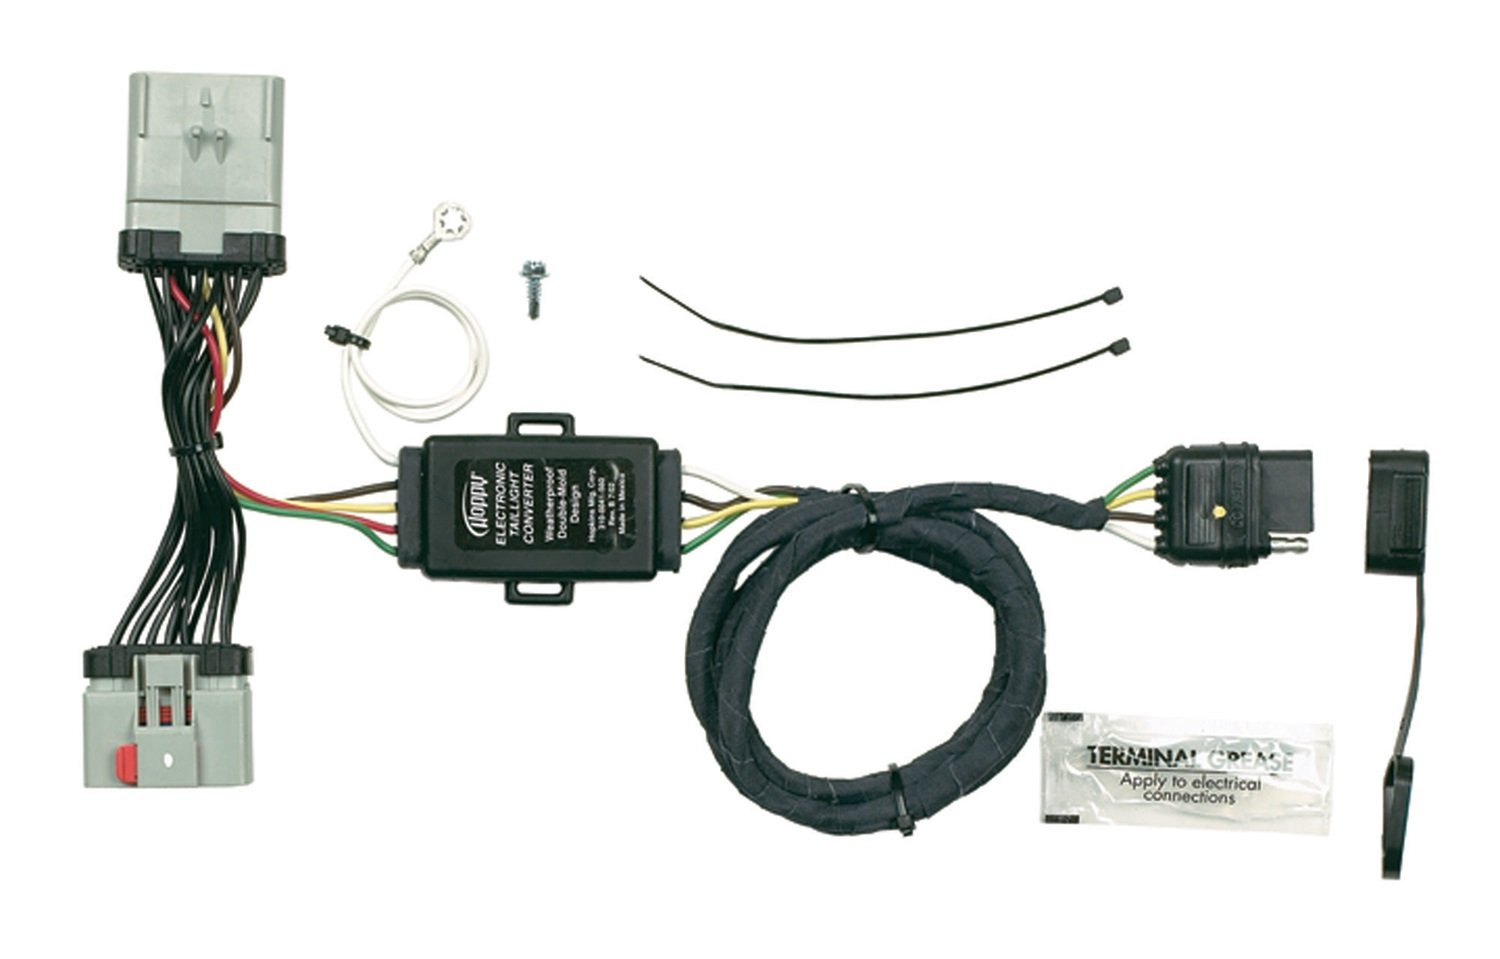 61a1DM22CCL._SL1500_ amazon com hopkins 42475 plug in simple vehicle wiring kit Jeep Tail Light Wiring Color at webbmarketing.co